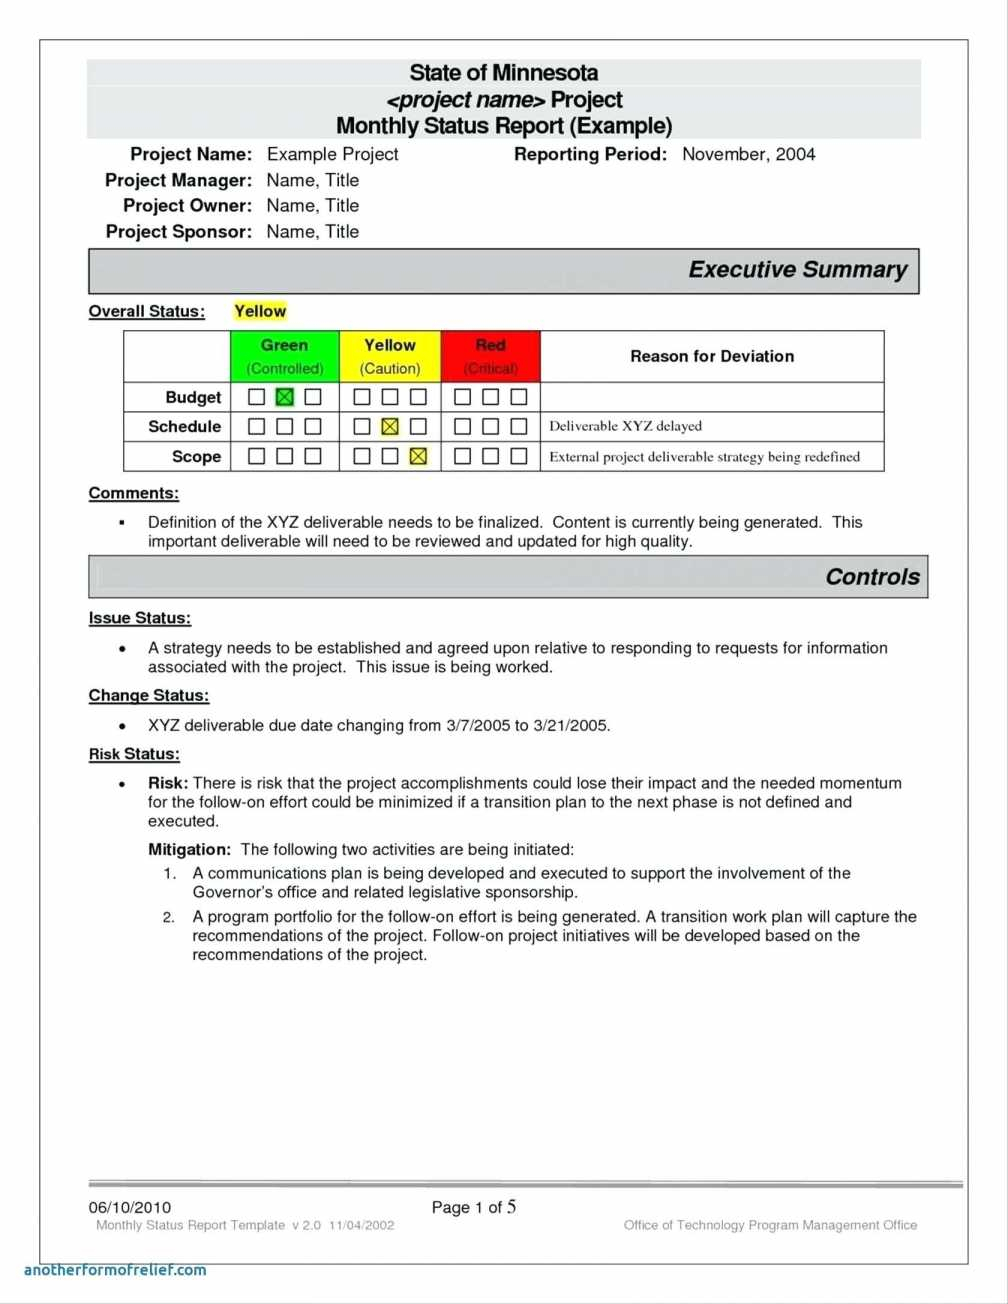 Monthly Status Report Template Project Management Unique Certificate Throughout Project Management Reporting Templates For Status